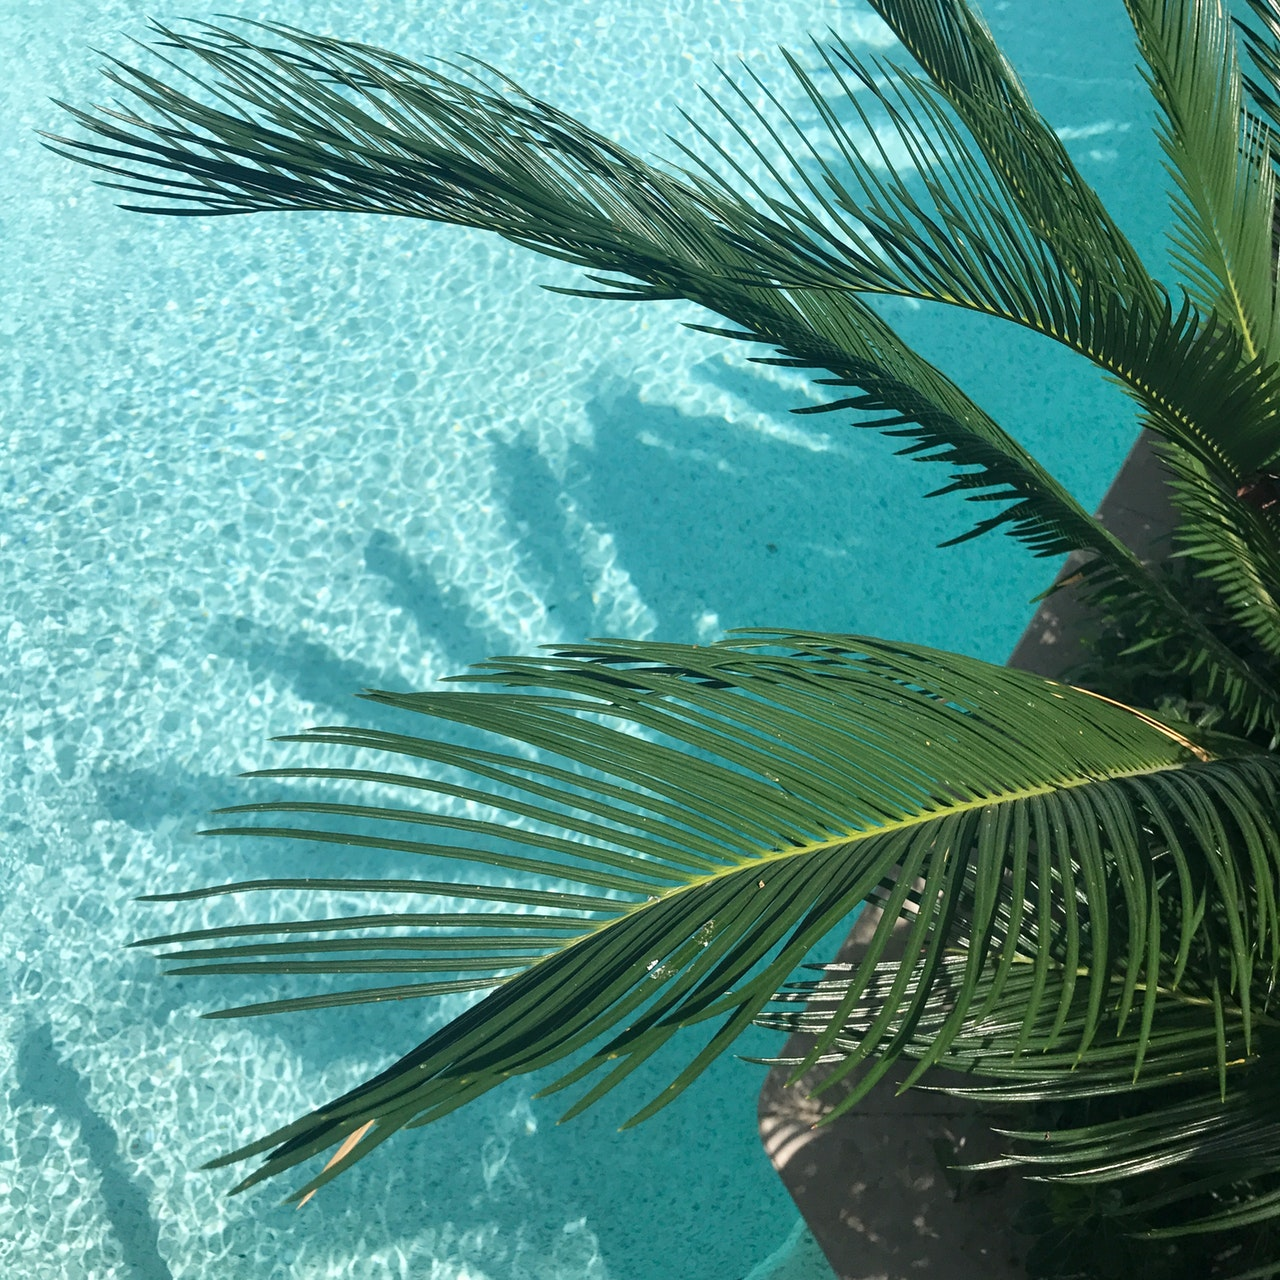 a palm tree over water